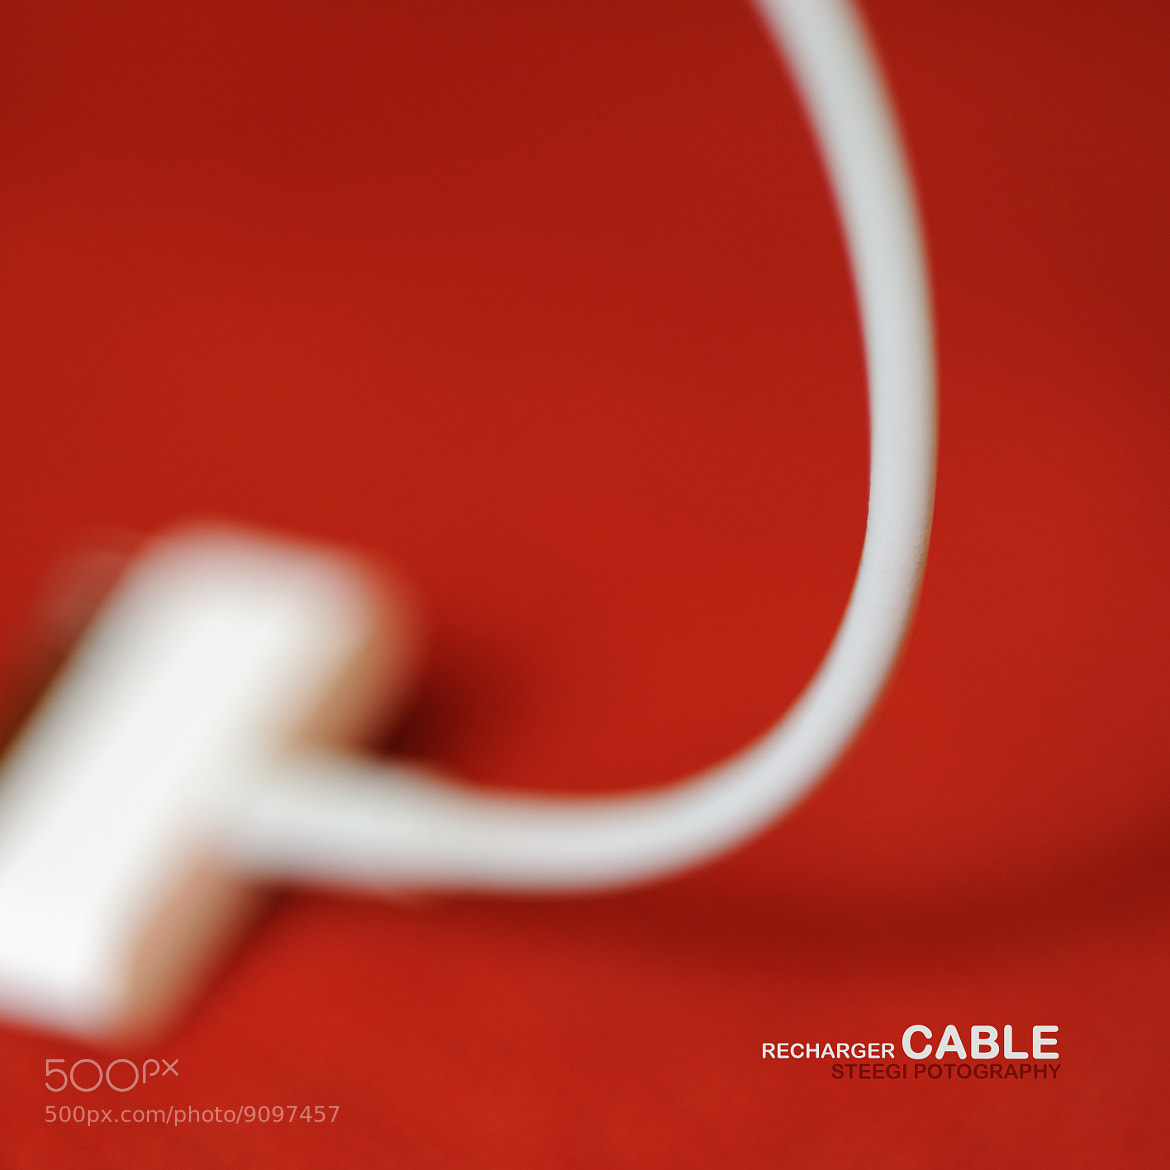 Photograph Recharger Cable by Andreas Steegmann on 500px